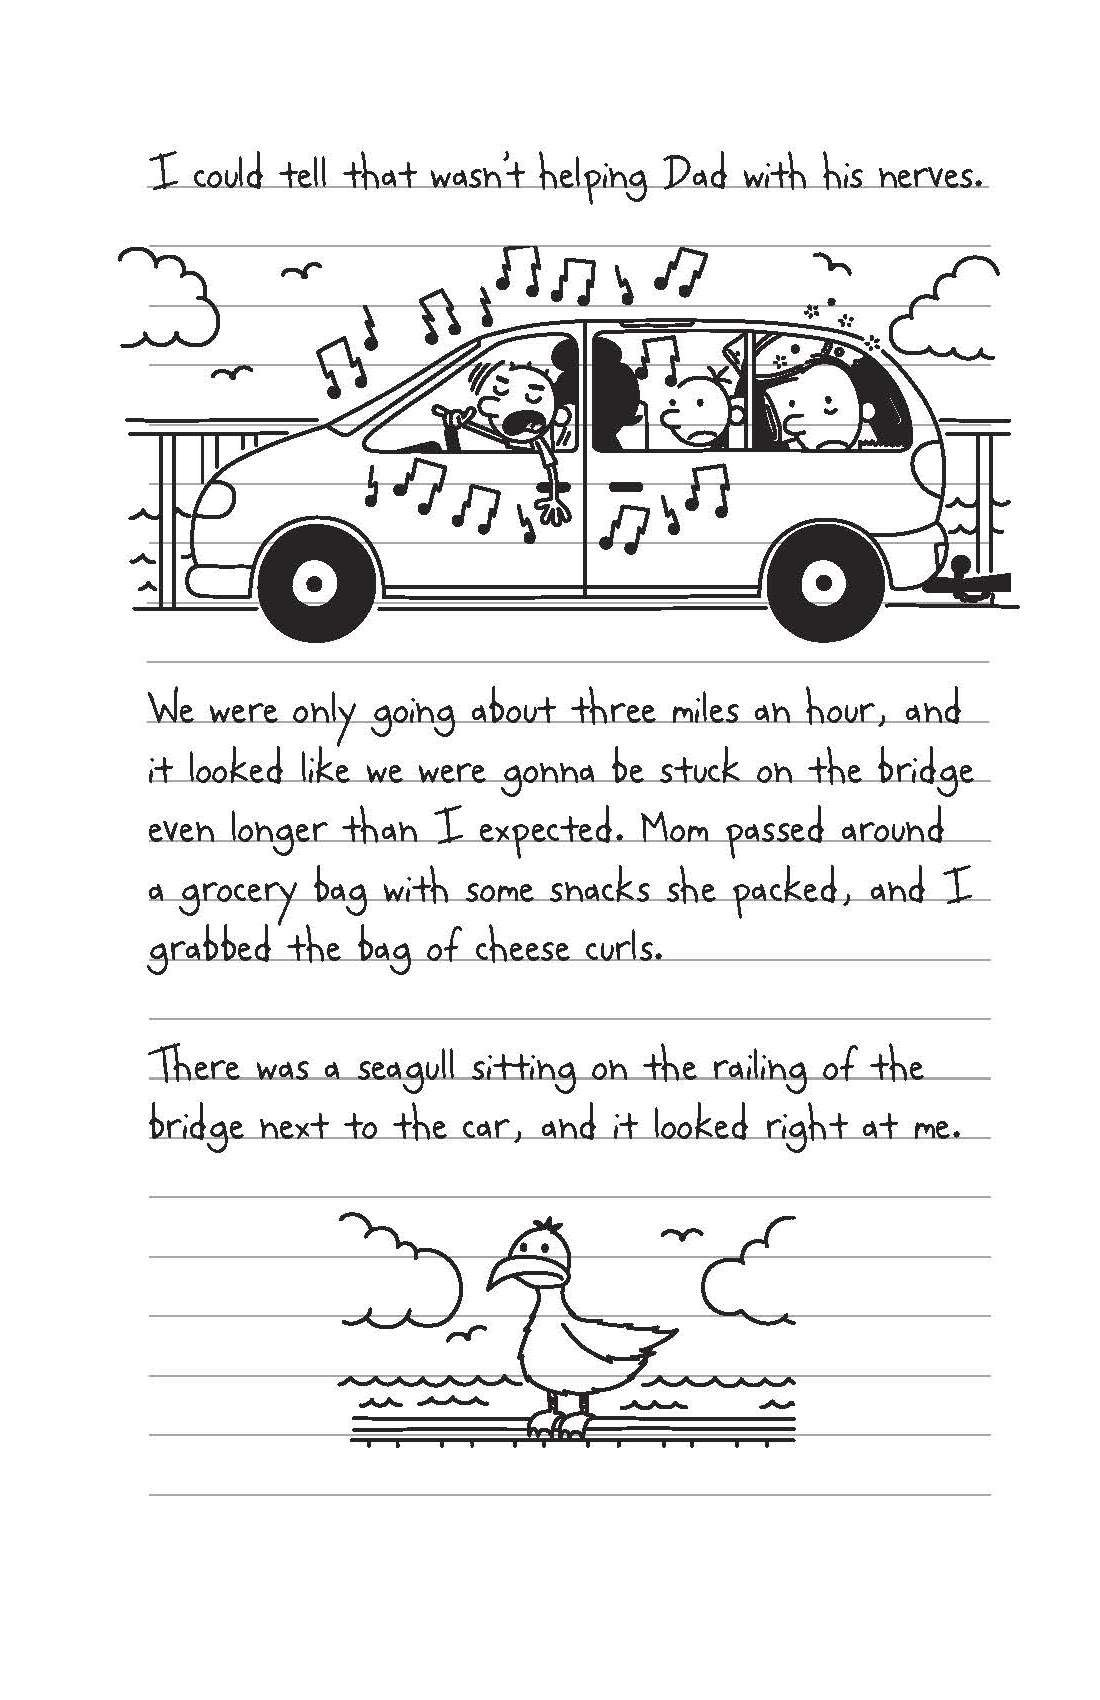 Buy the long haul diary of a wimpy kid book 9 book online at low buy the long haul diary of a wimpy kid book 9 book online at low prices in india the long haul diary of a wimpy kid book 9 reviews ratings amazon solutioingenieria Images